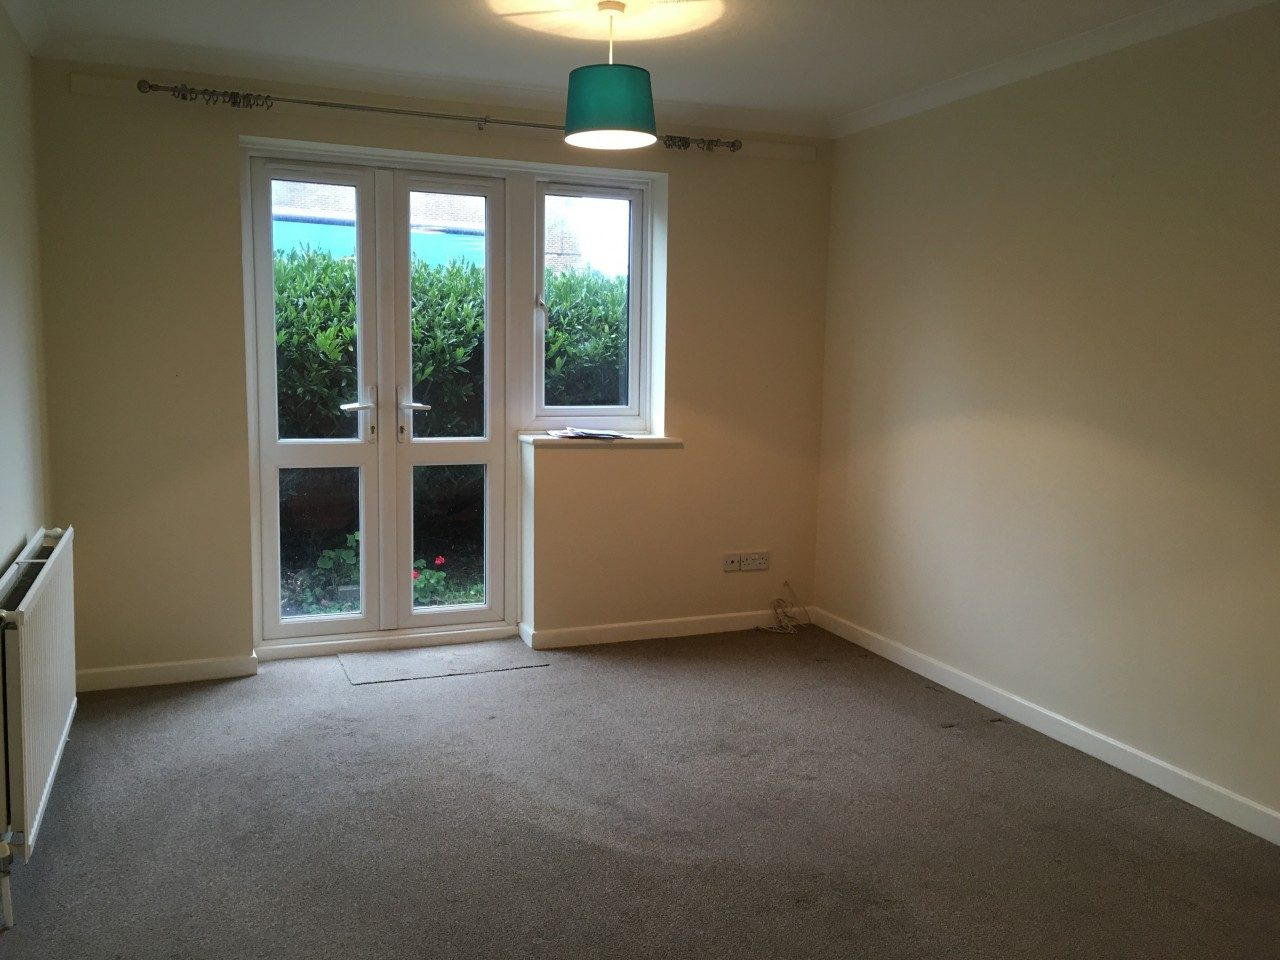 Property To Rent In Southampton Central Station Area